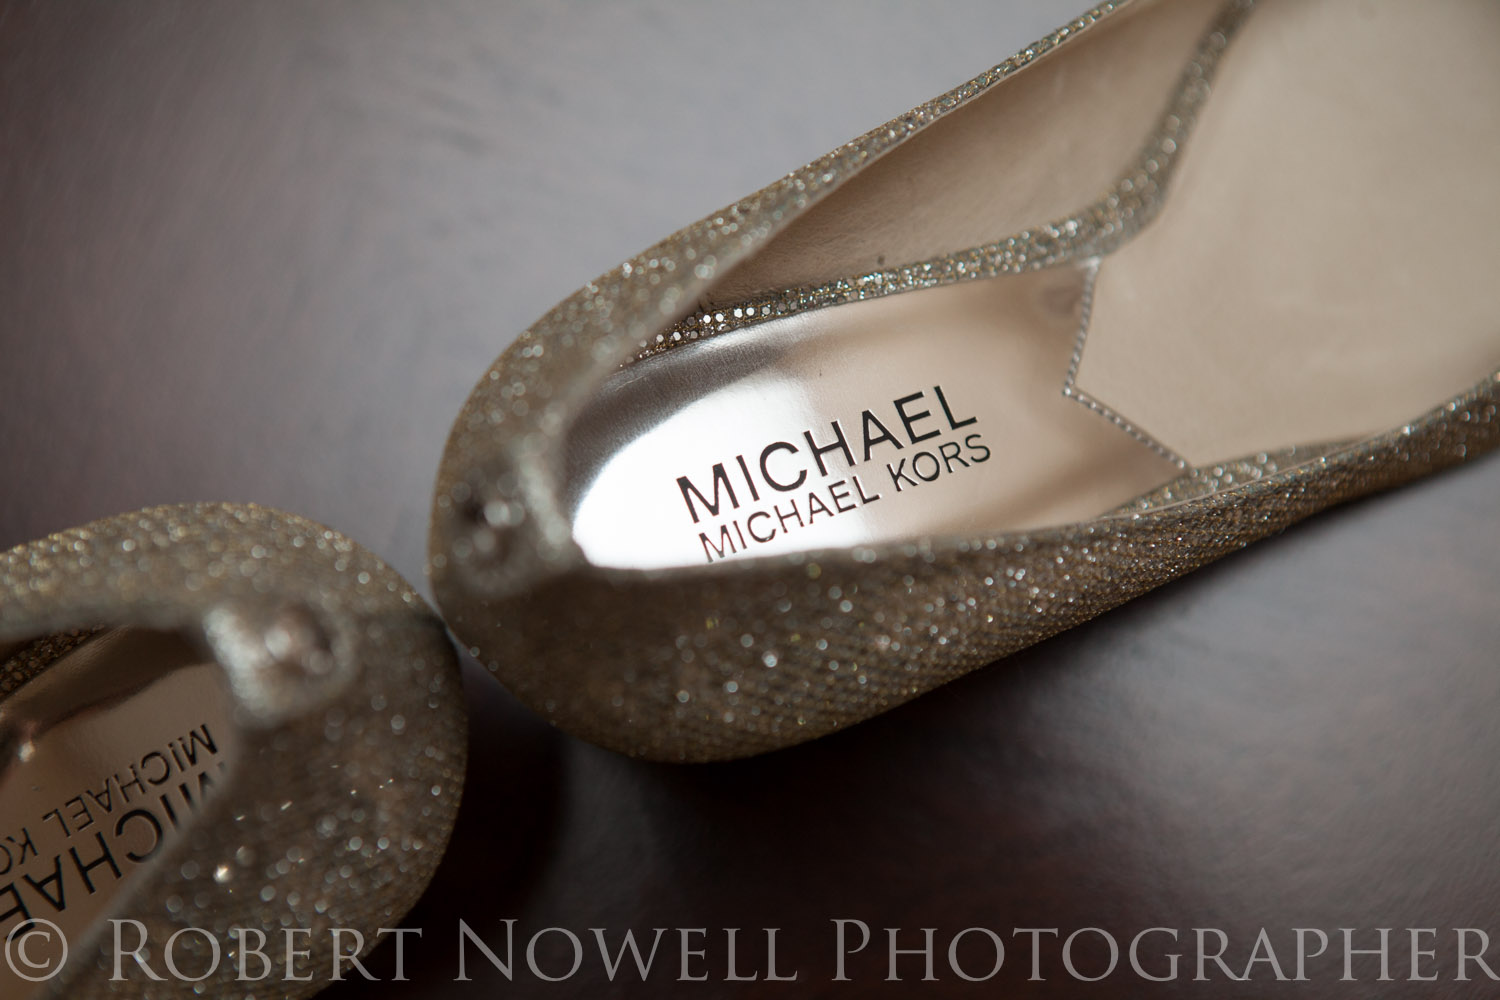 Michael Korrs shoes Niagara